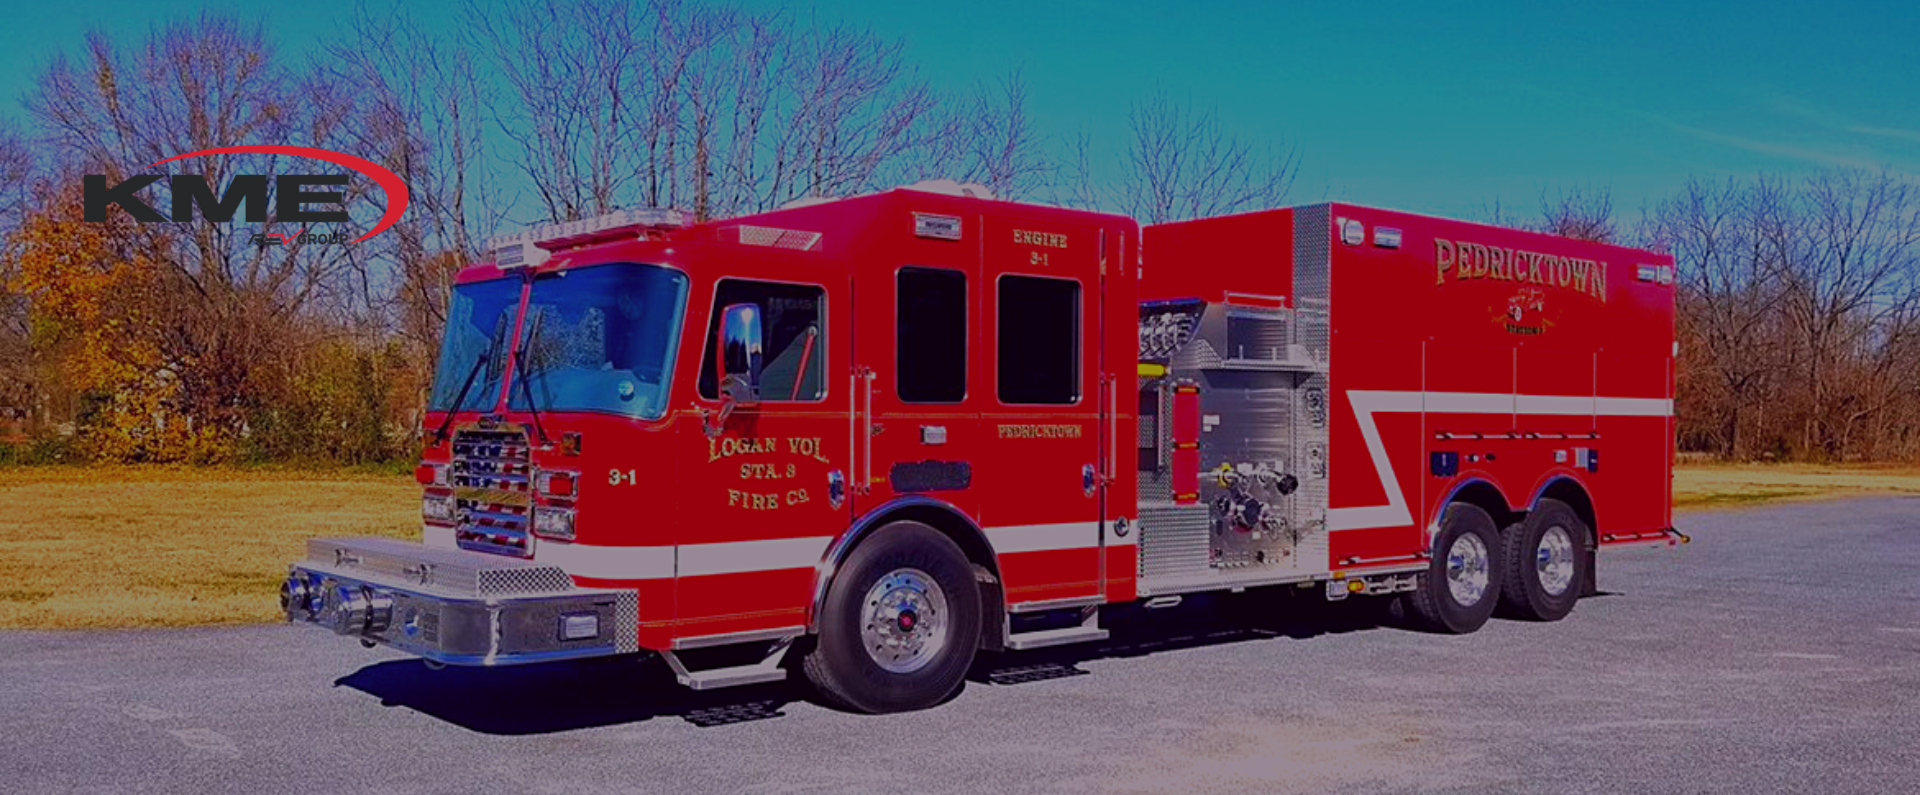 First Priority Emergency Vehicles New KME Firetrucks Available 2